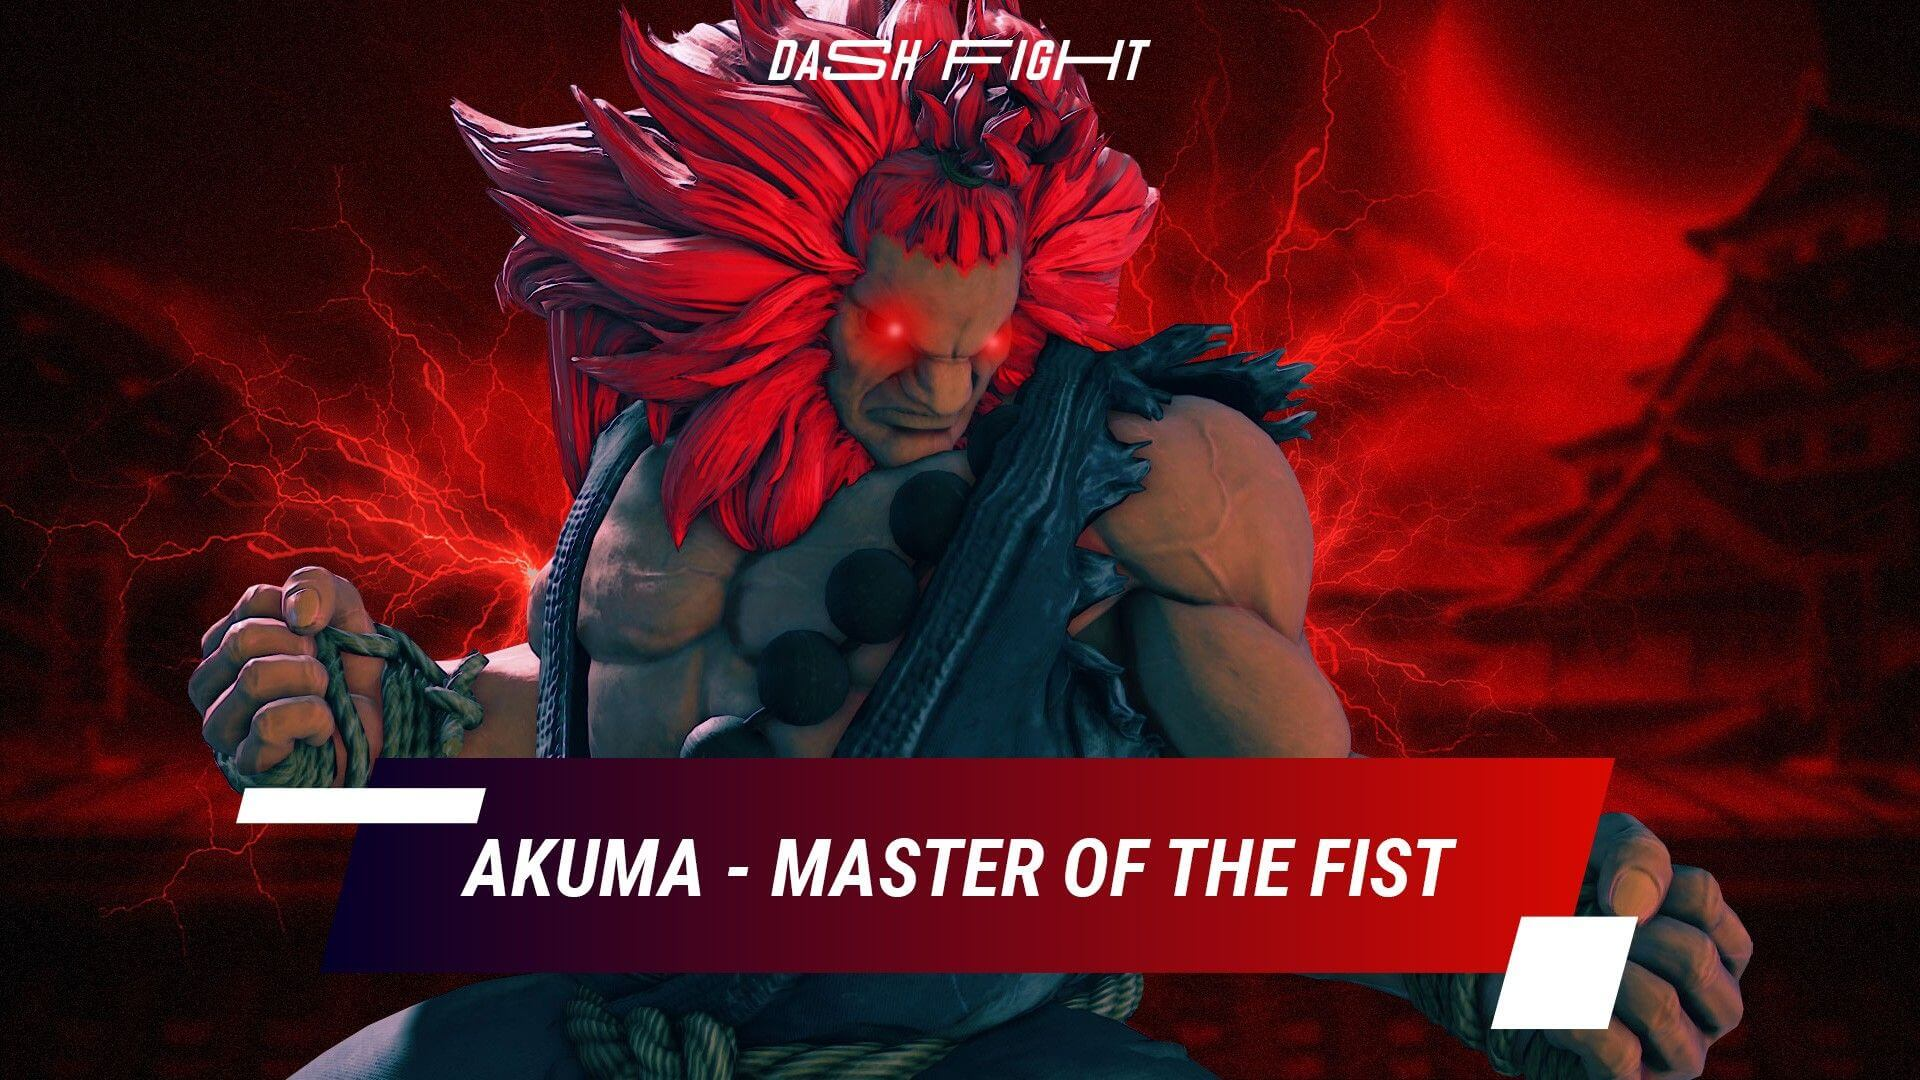 Street Fighter Akuma - Master of the Fist